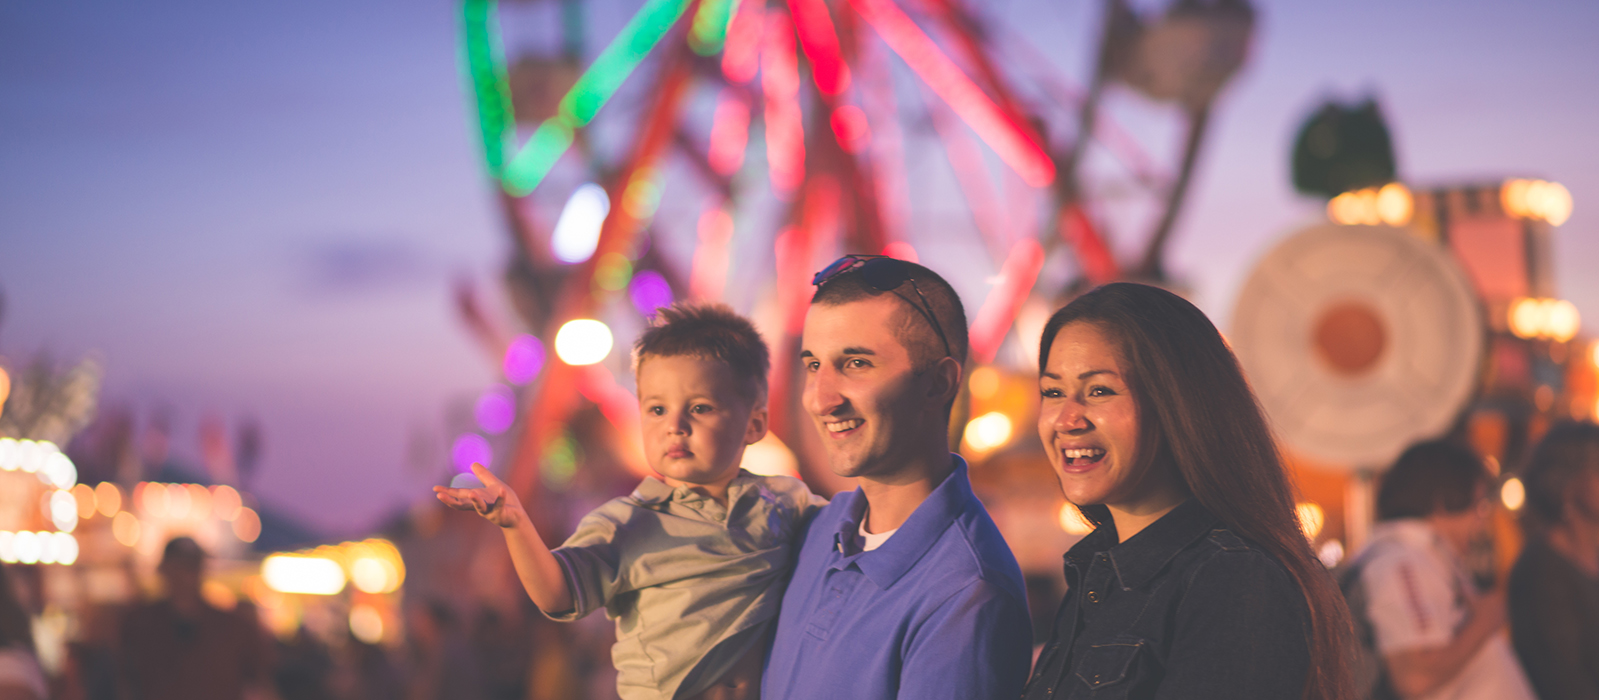 Family at a fair in the evening with a ferris wheel lit up behind them.